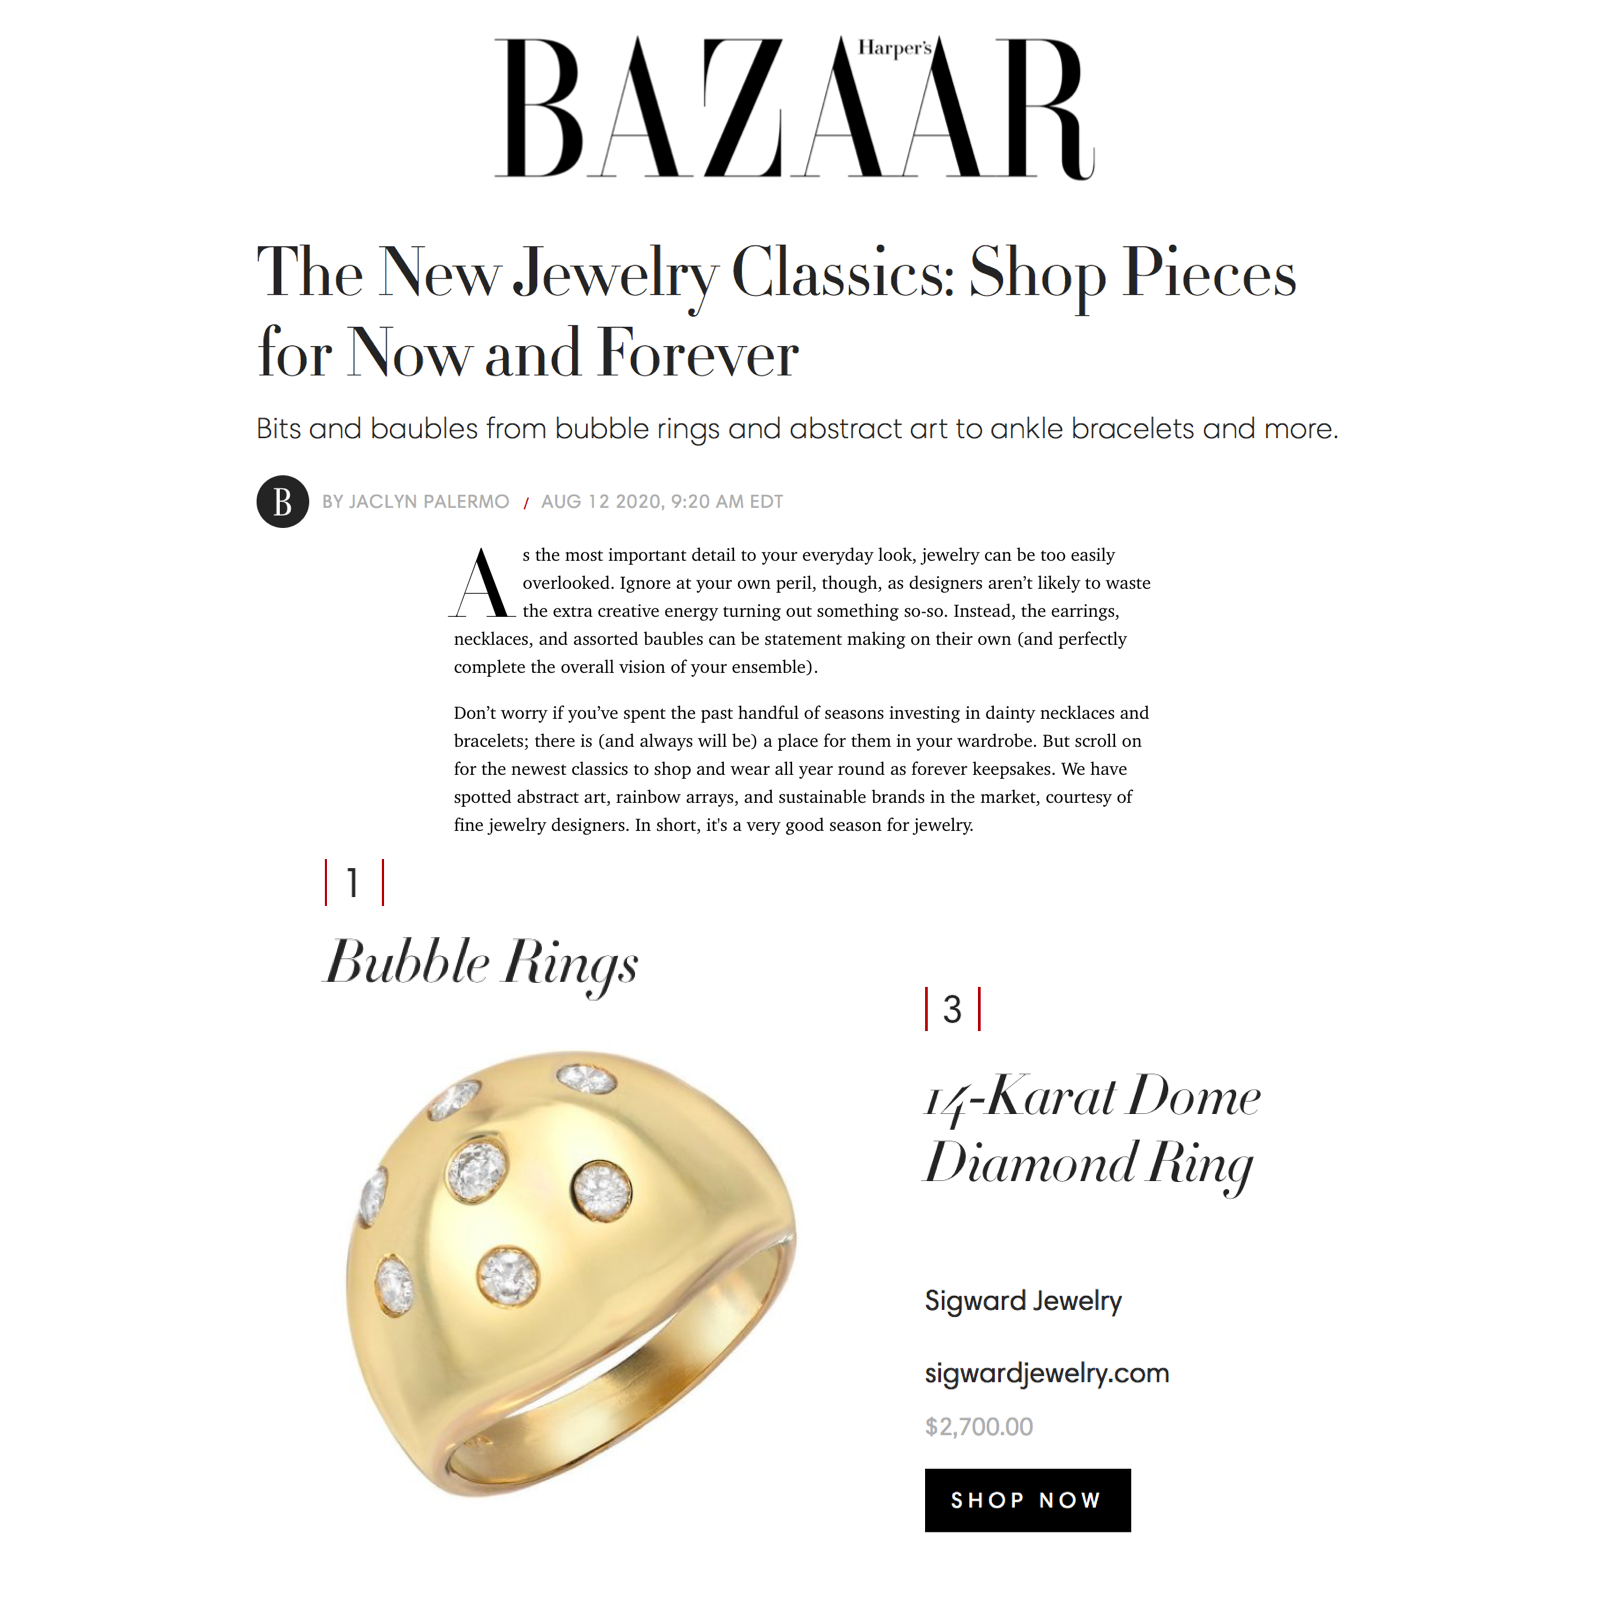 Sig Ward Jewelry as featured on Harper's Bazaar US